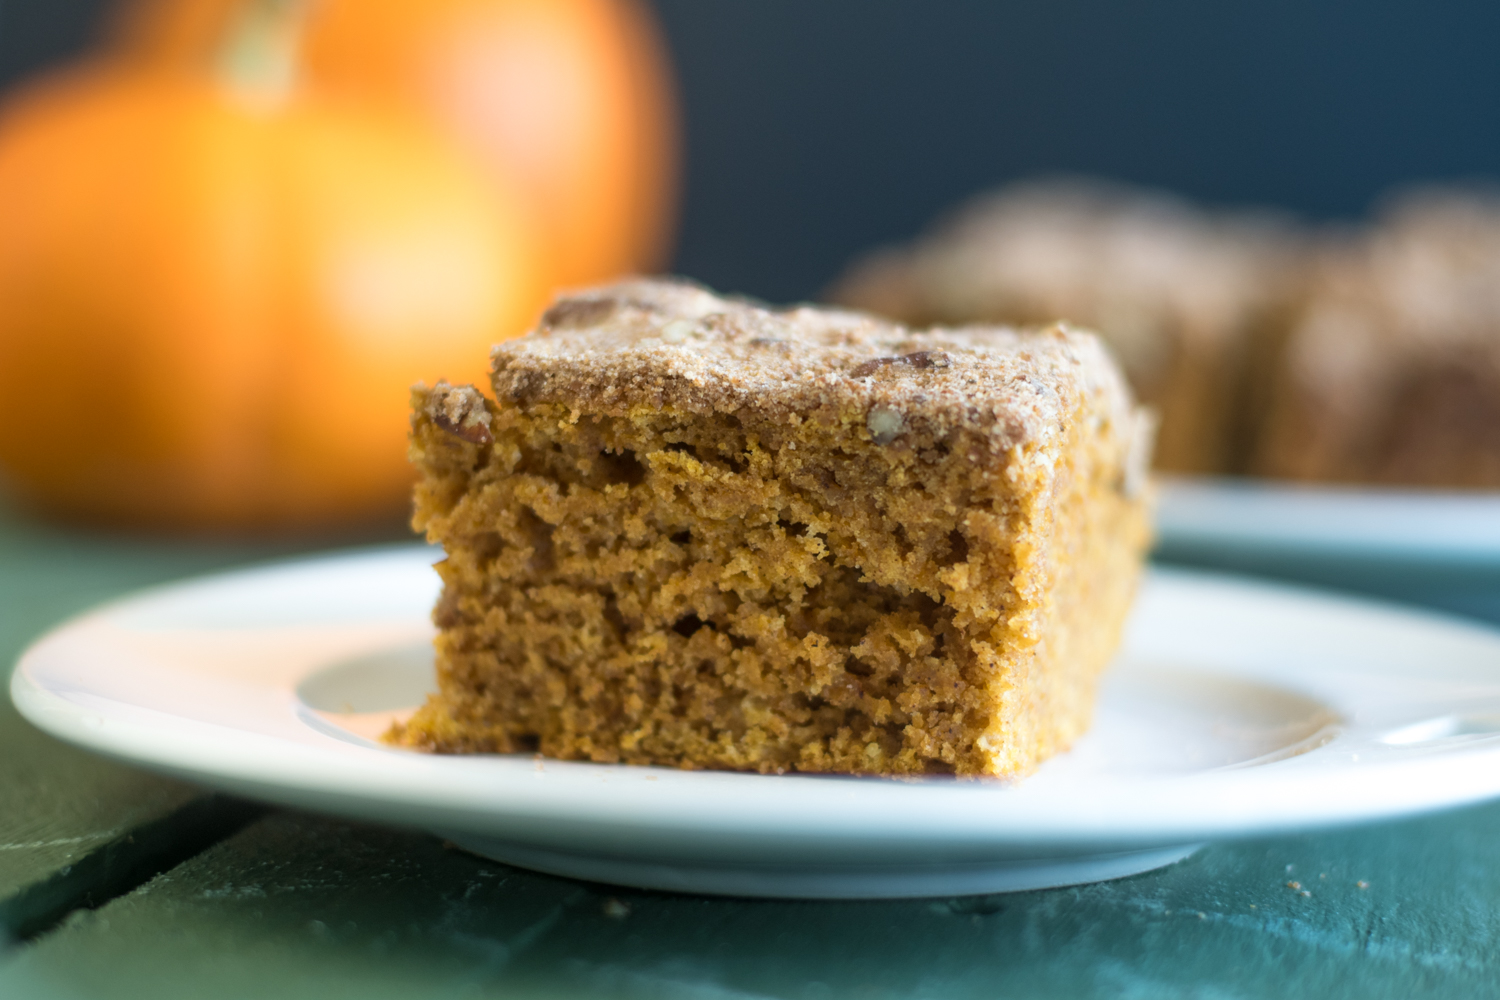 Vegan Pumpkin Cake topped with a pecan streusel is perfect for fall!